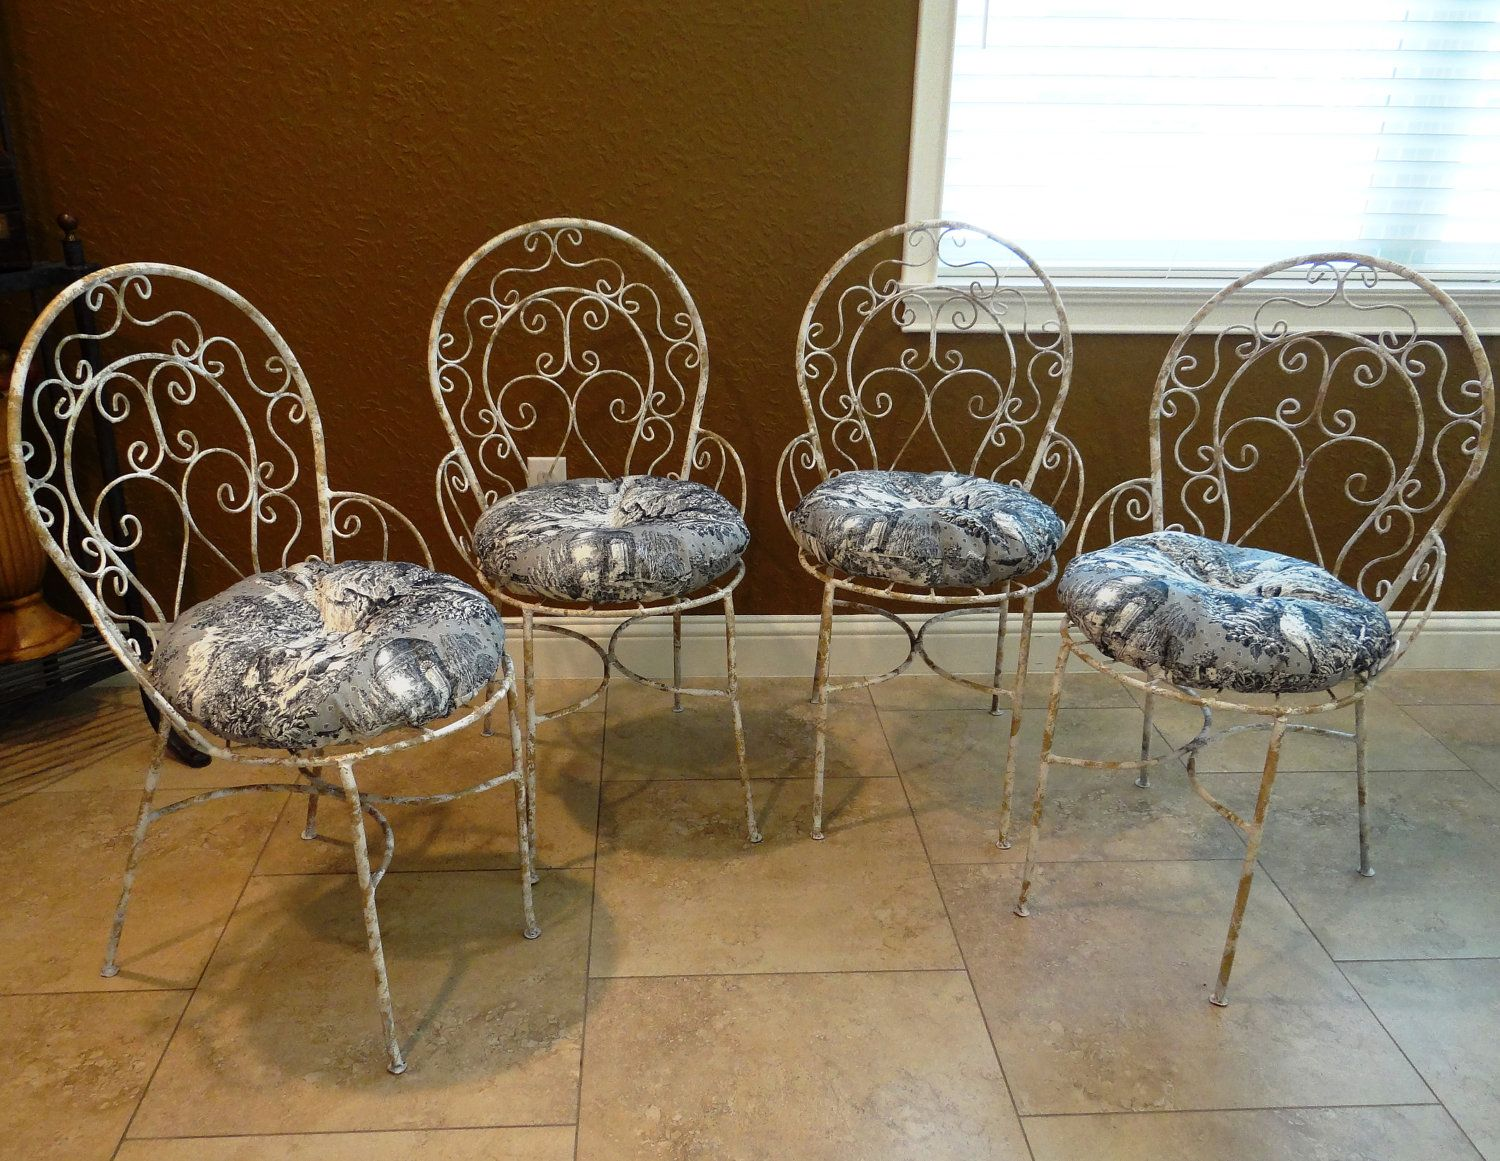 Refurbished Vintage Metal French Country Bistro Chairs Via